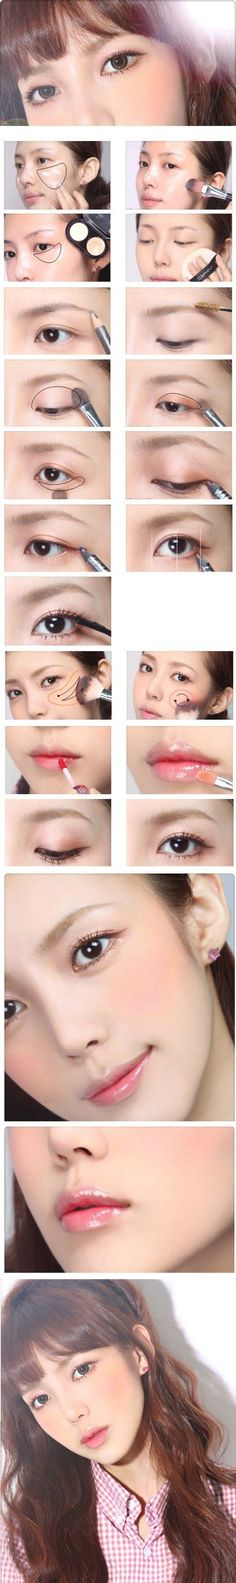 #simple #asian #make-up   nice and cleanly done